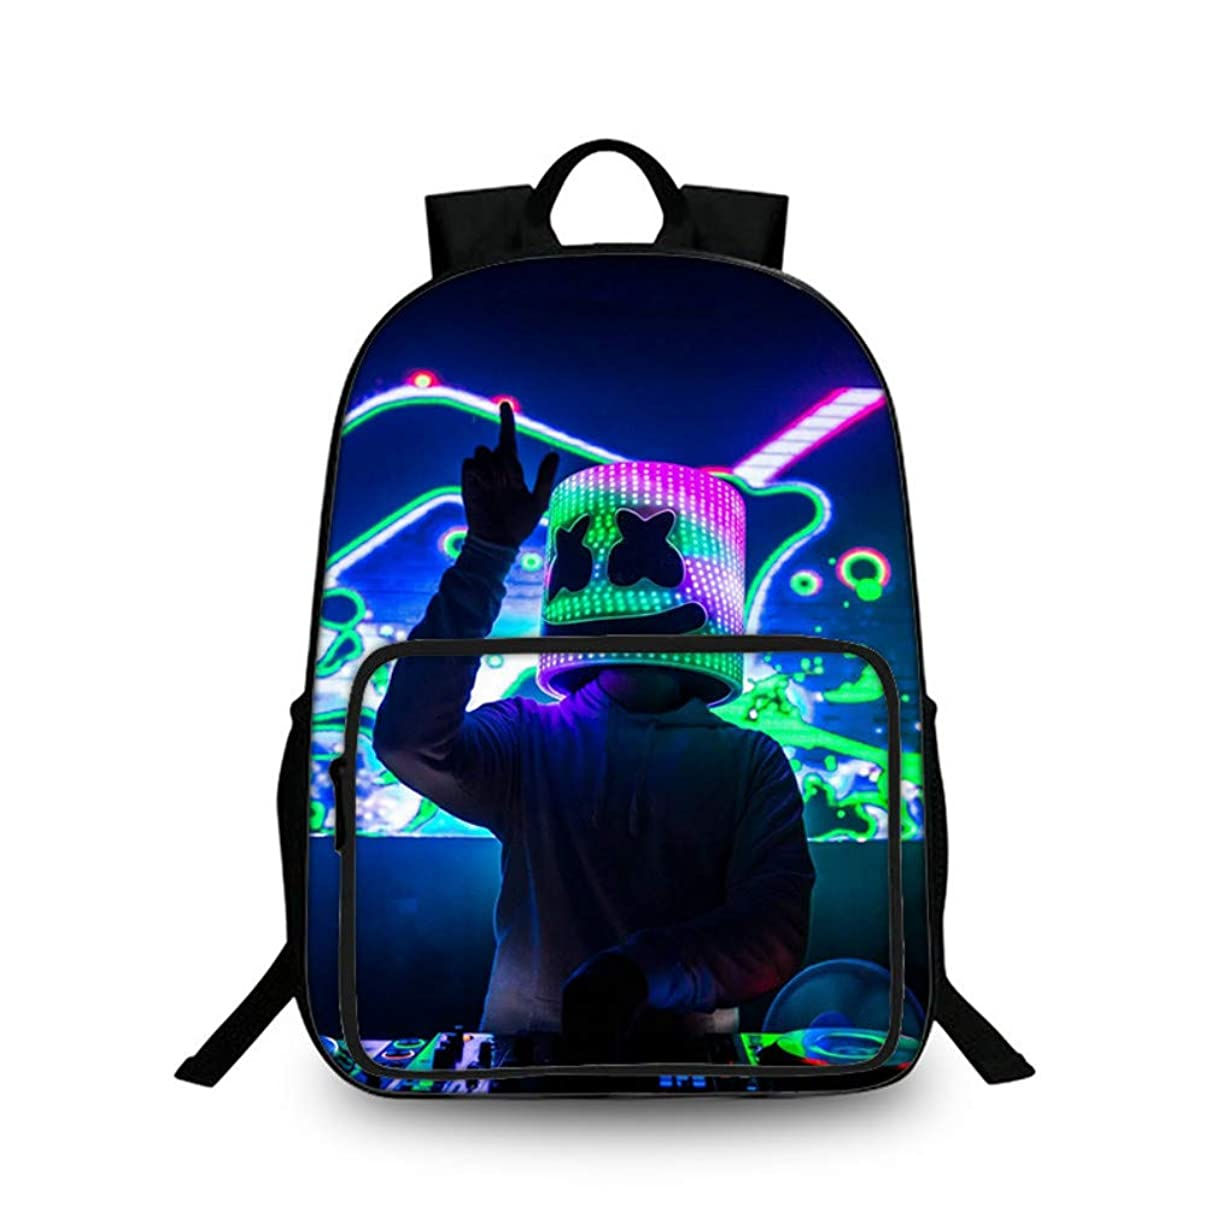 Boys School Backpack DJ Marshmello Backpack 3D Printed School Bags Unisex Laptop Backpack for Kids/Students/Adults